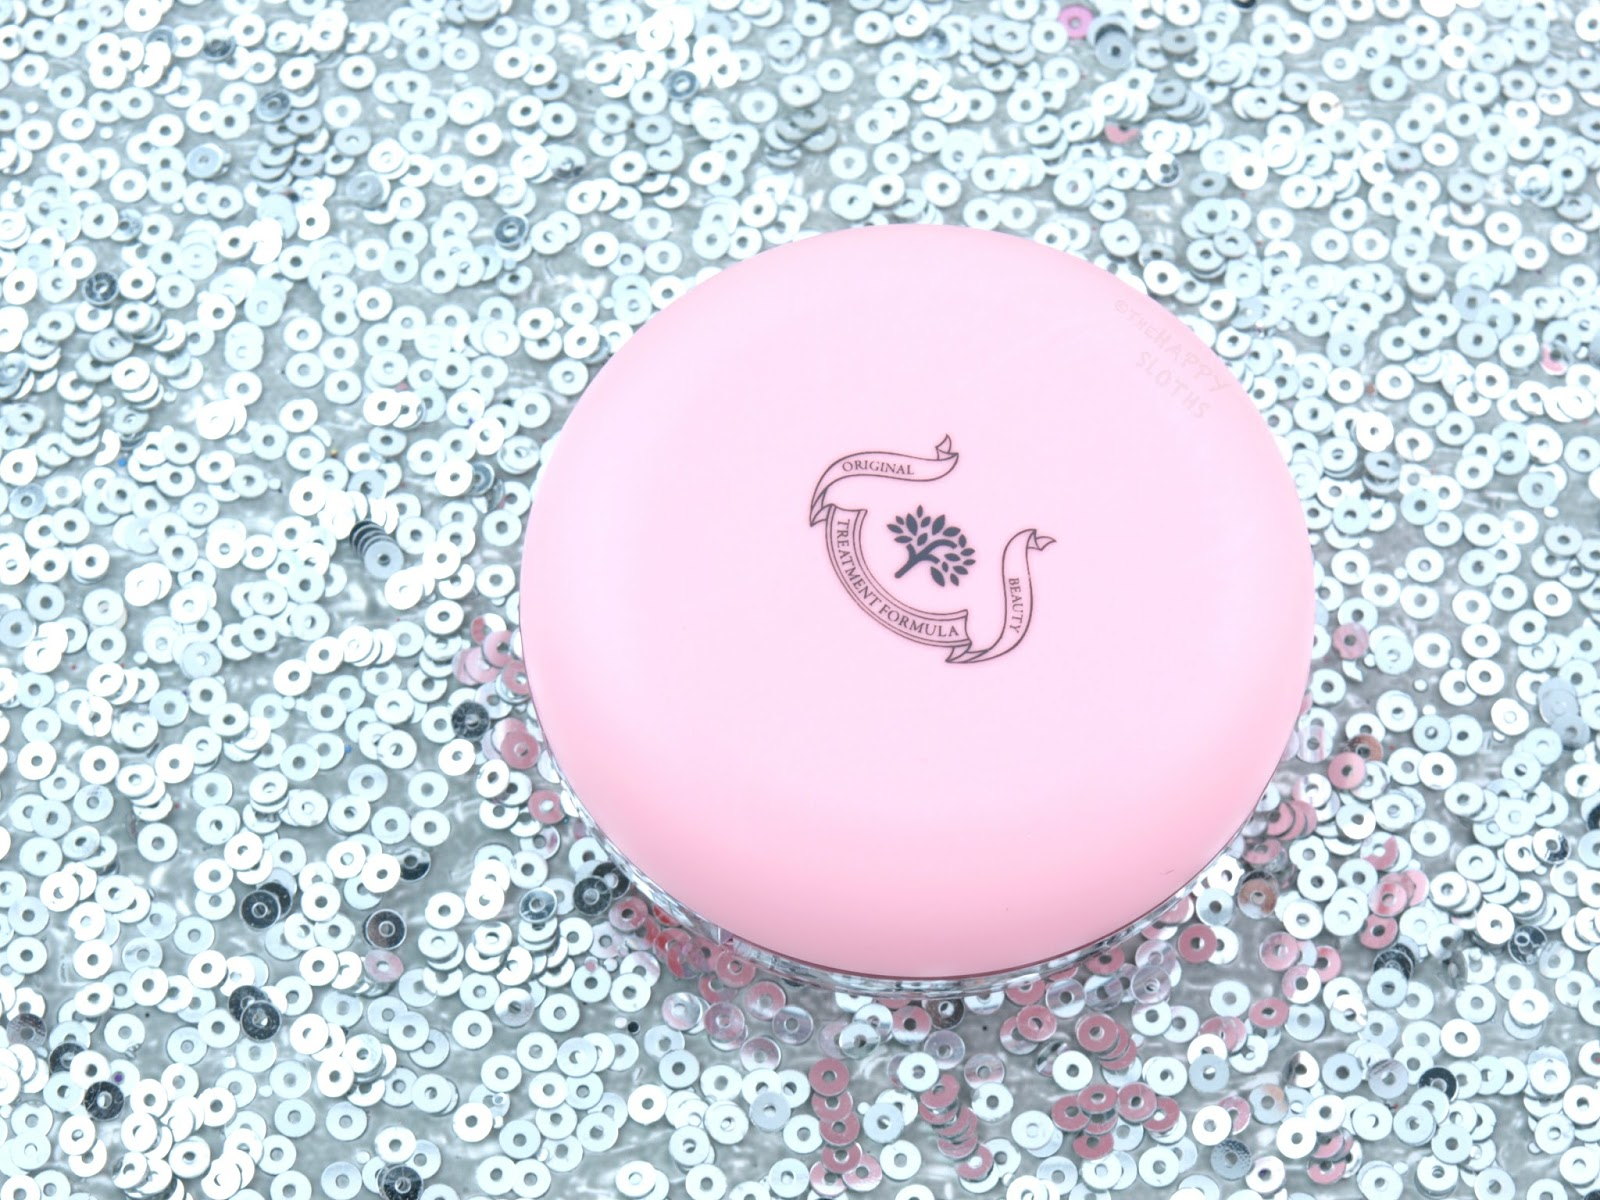 """THEFACESHOP Hydro Cushion Blush in """"01 Pink"""": Review and Swatches"""